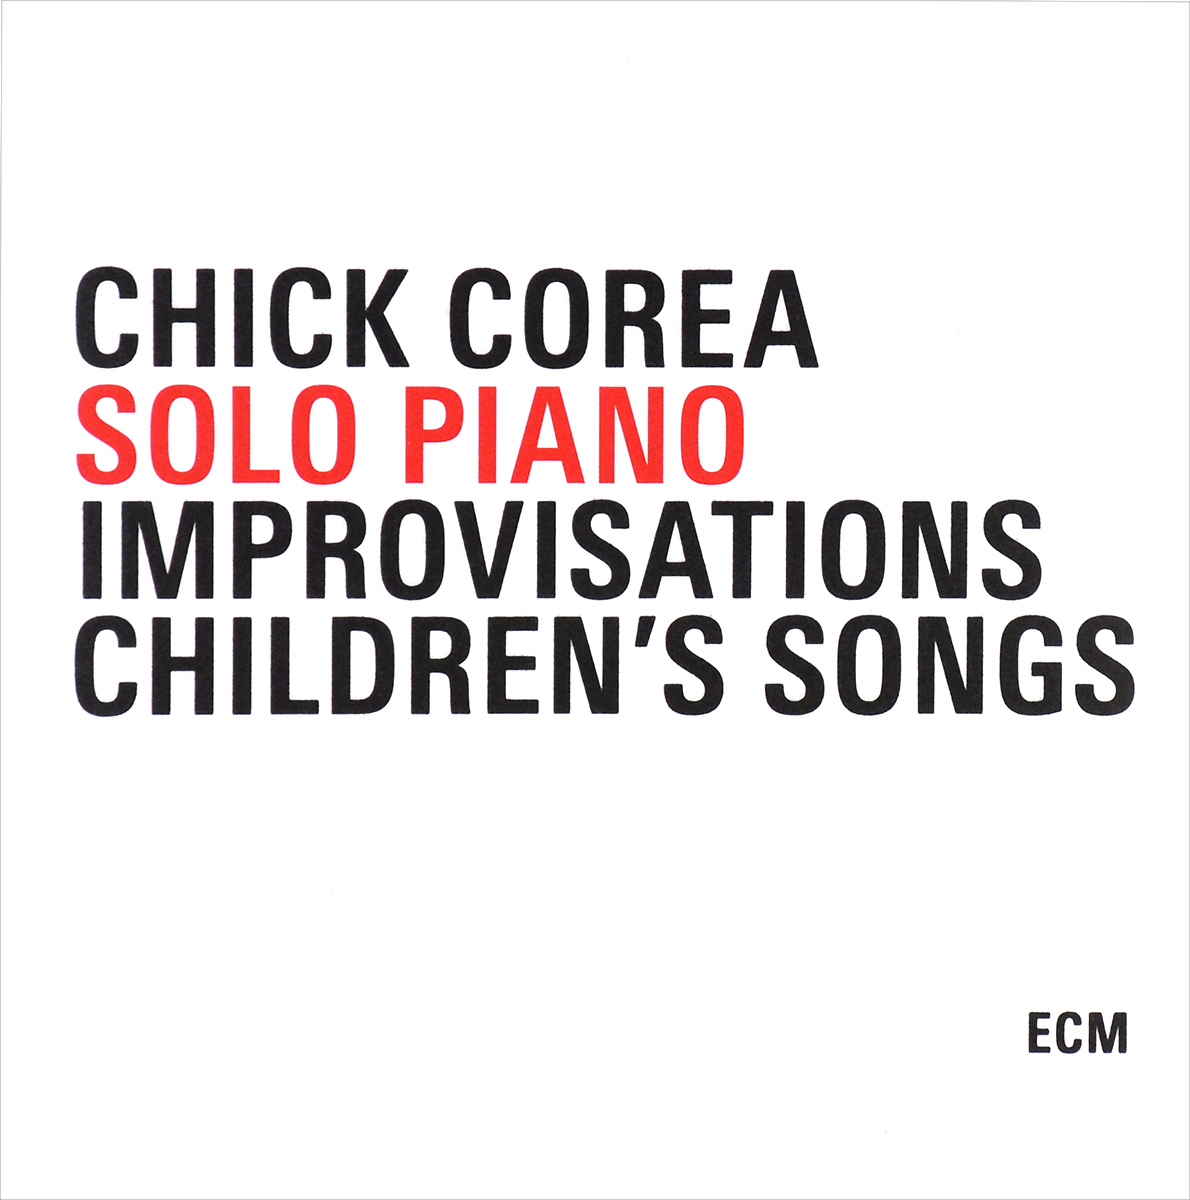 Чик Кориа,Ида Кавафиан,Фред Шерри Chick Corea. Solo Piano / Improvisations / Children's Songs (3 CD) чик кориа chick corea solo piano portraits 2 cd